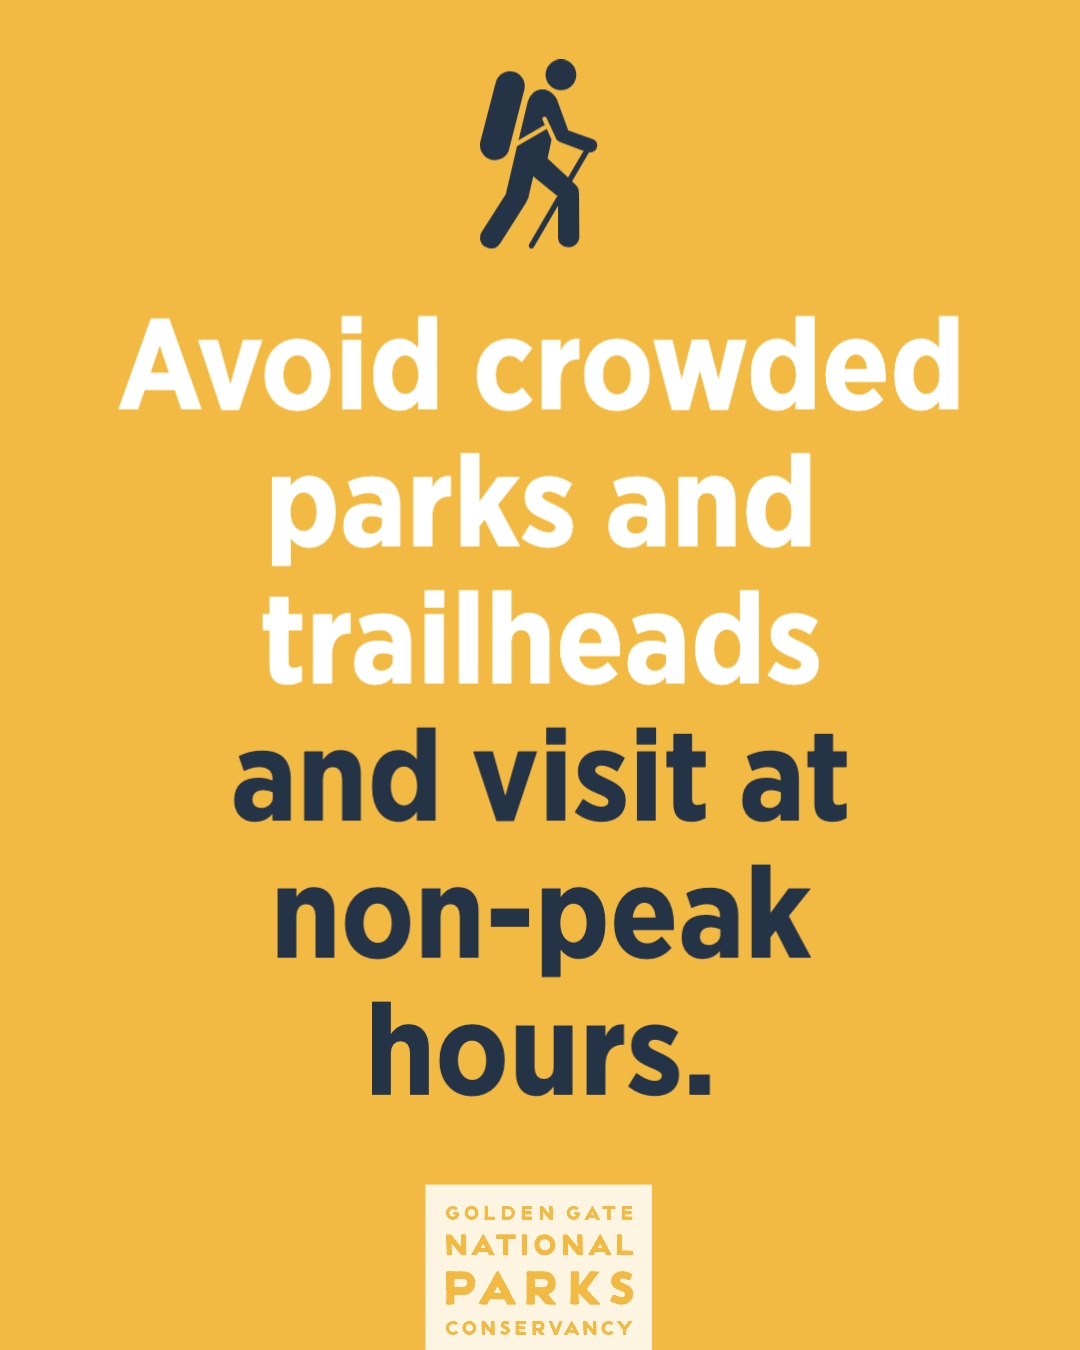 Avoid crowded parks and trailheads and vist at non-peak hours